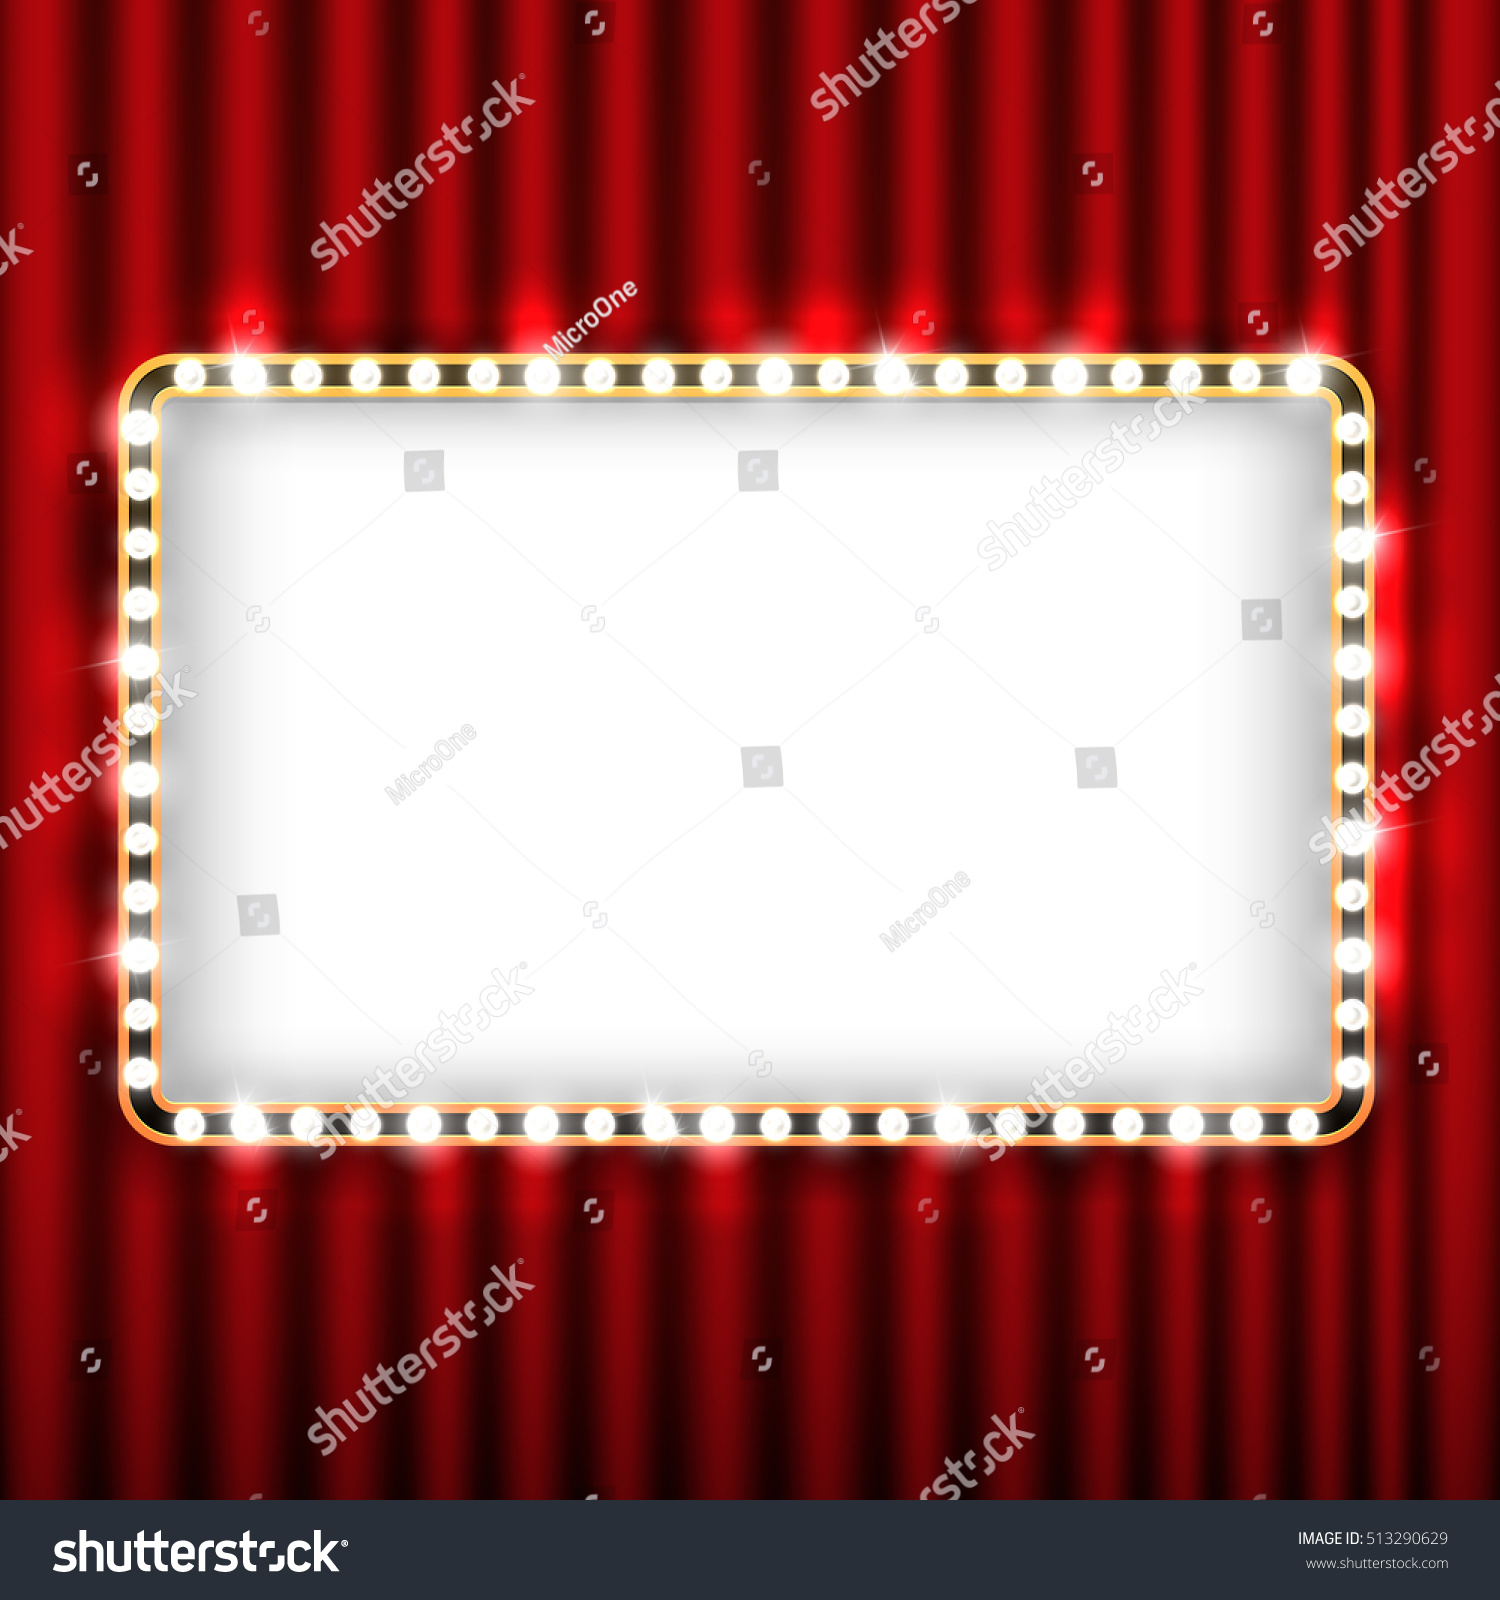 Theater Scene Red Curtain Sign Gold Stock Illustration 513290629 ...